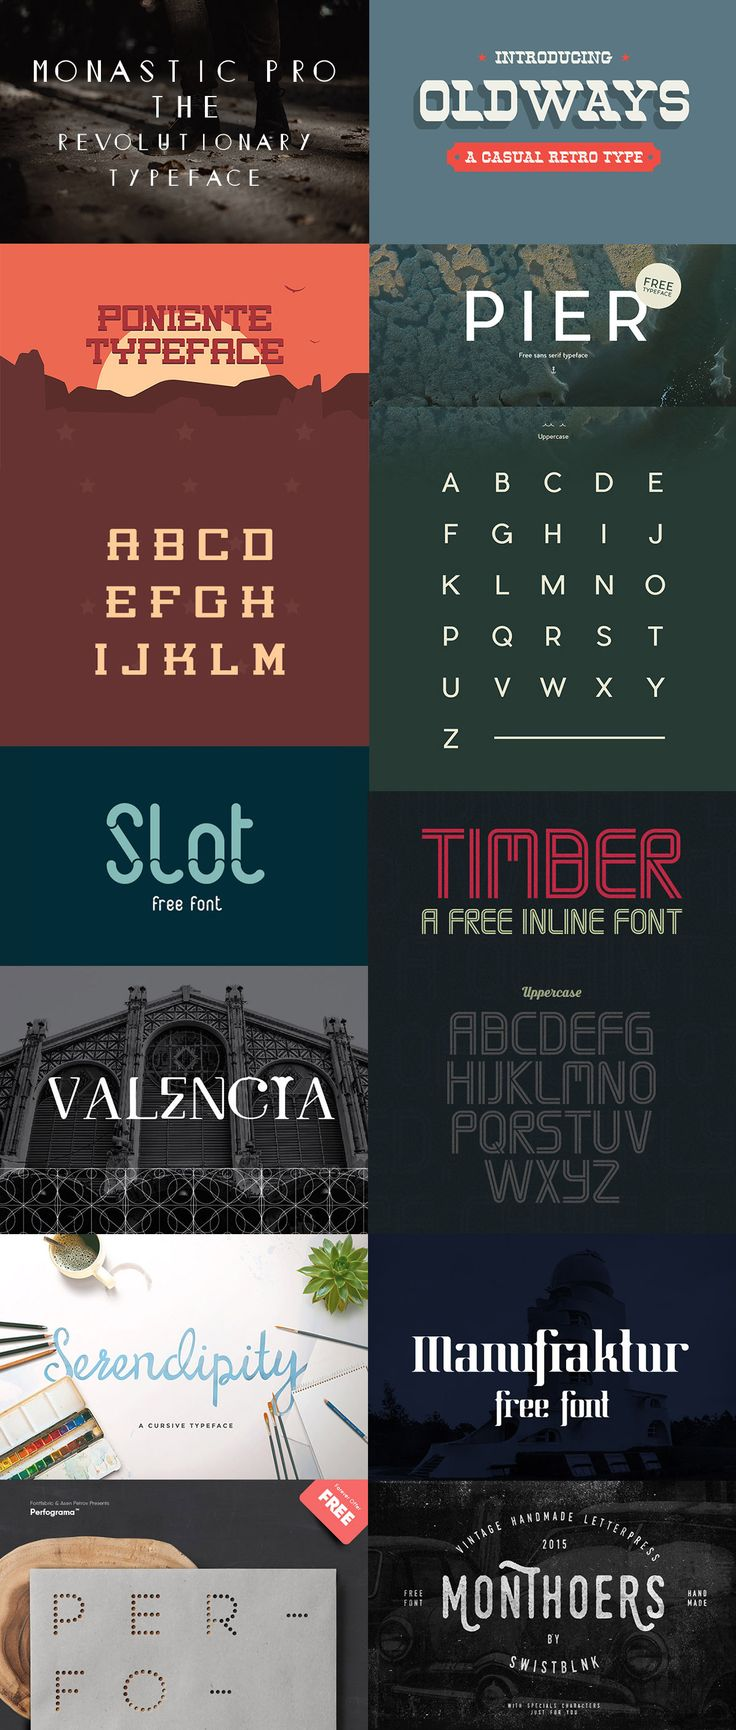 A latest collection of best free fonts. This collection includes some of the best web design fonts and display fonts suitable for logo, poster, branding, packaging and t-shirt design.